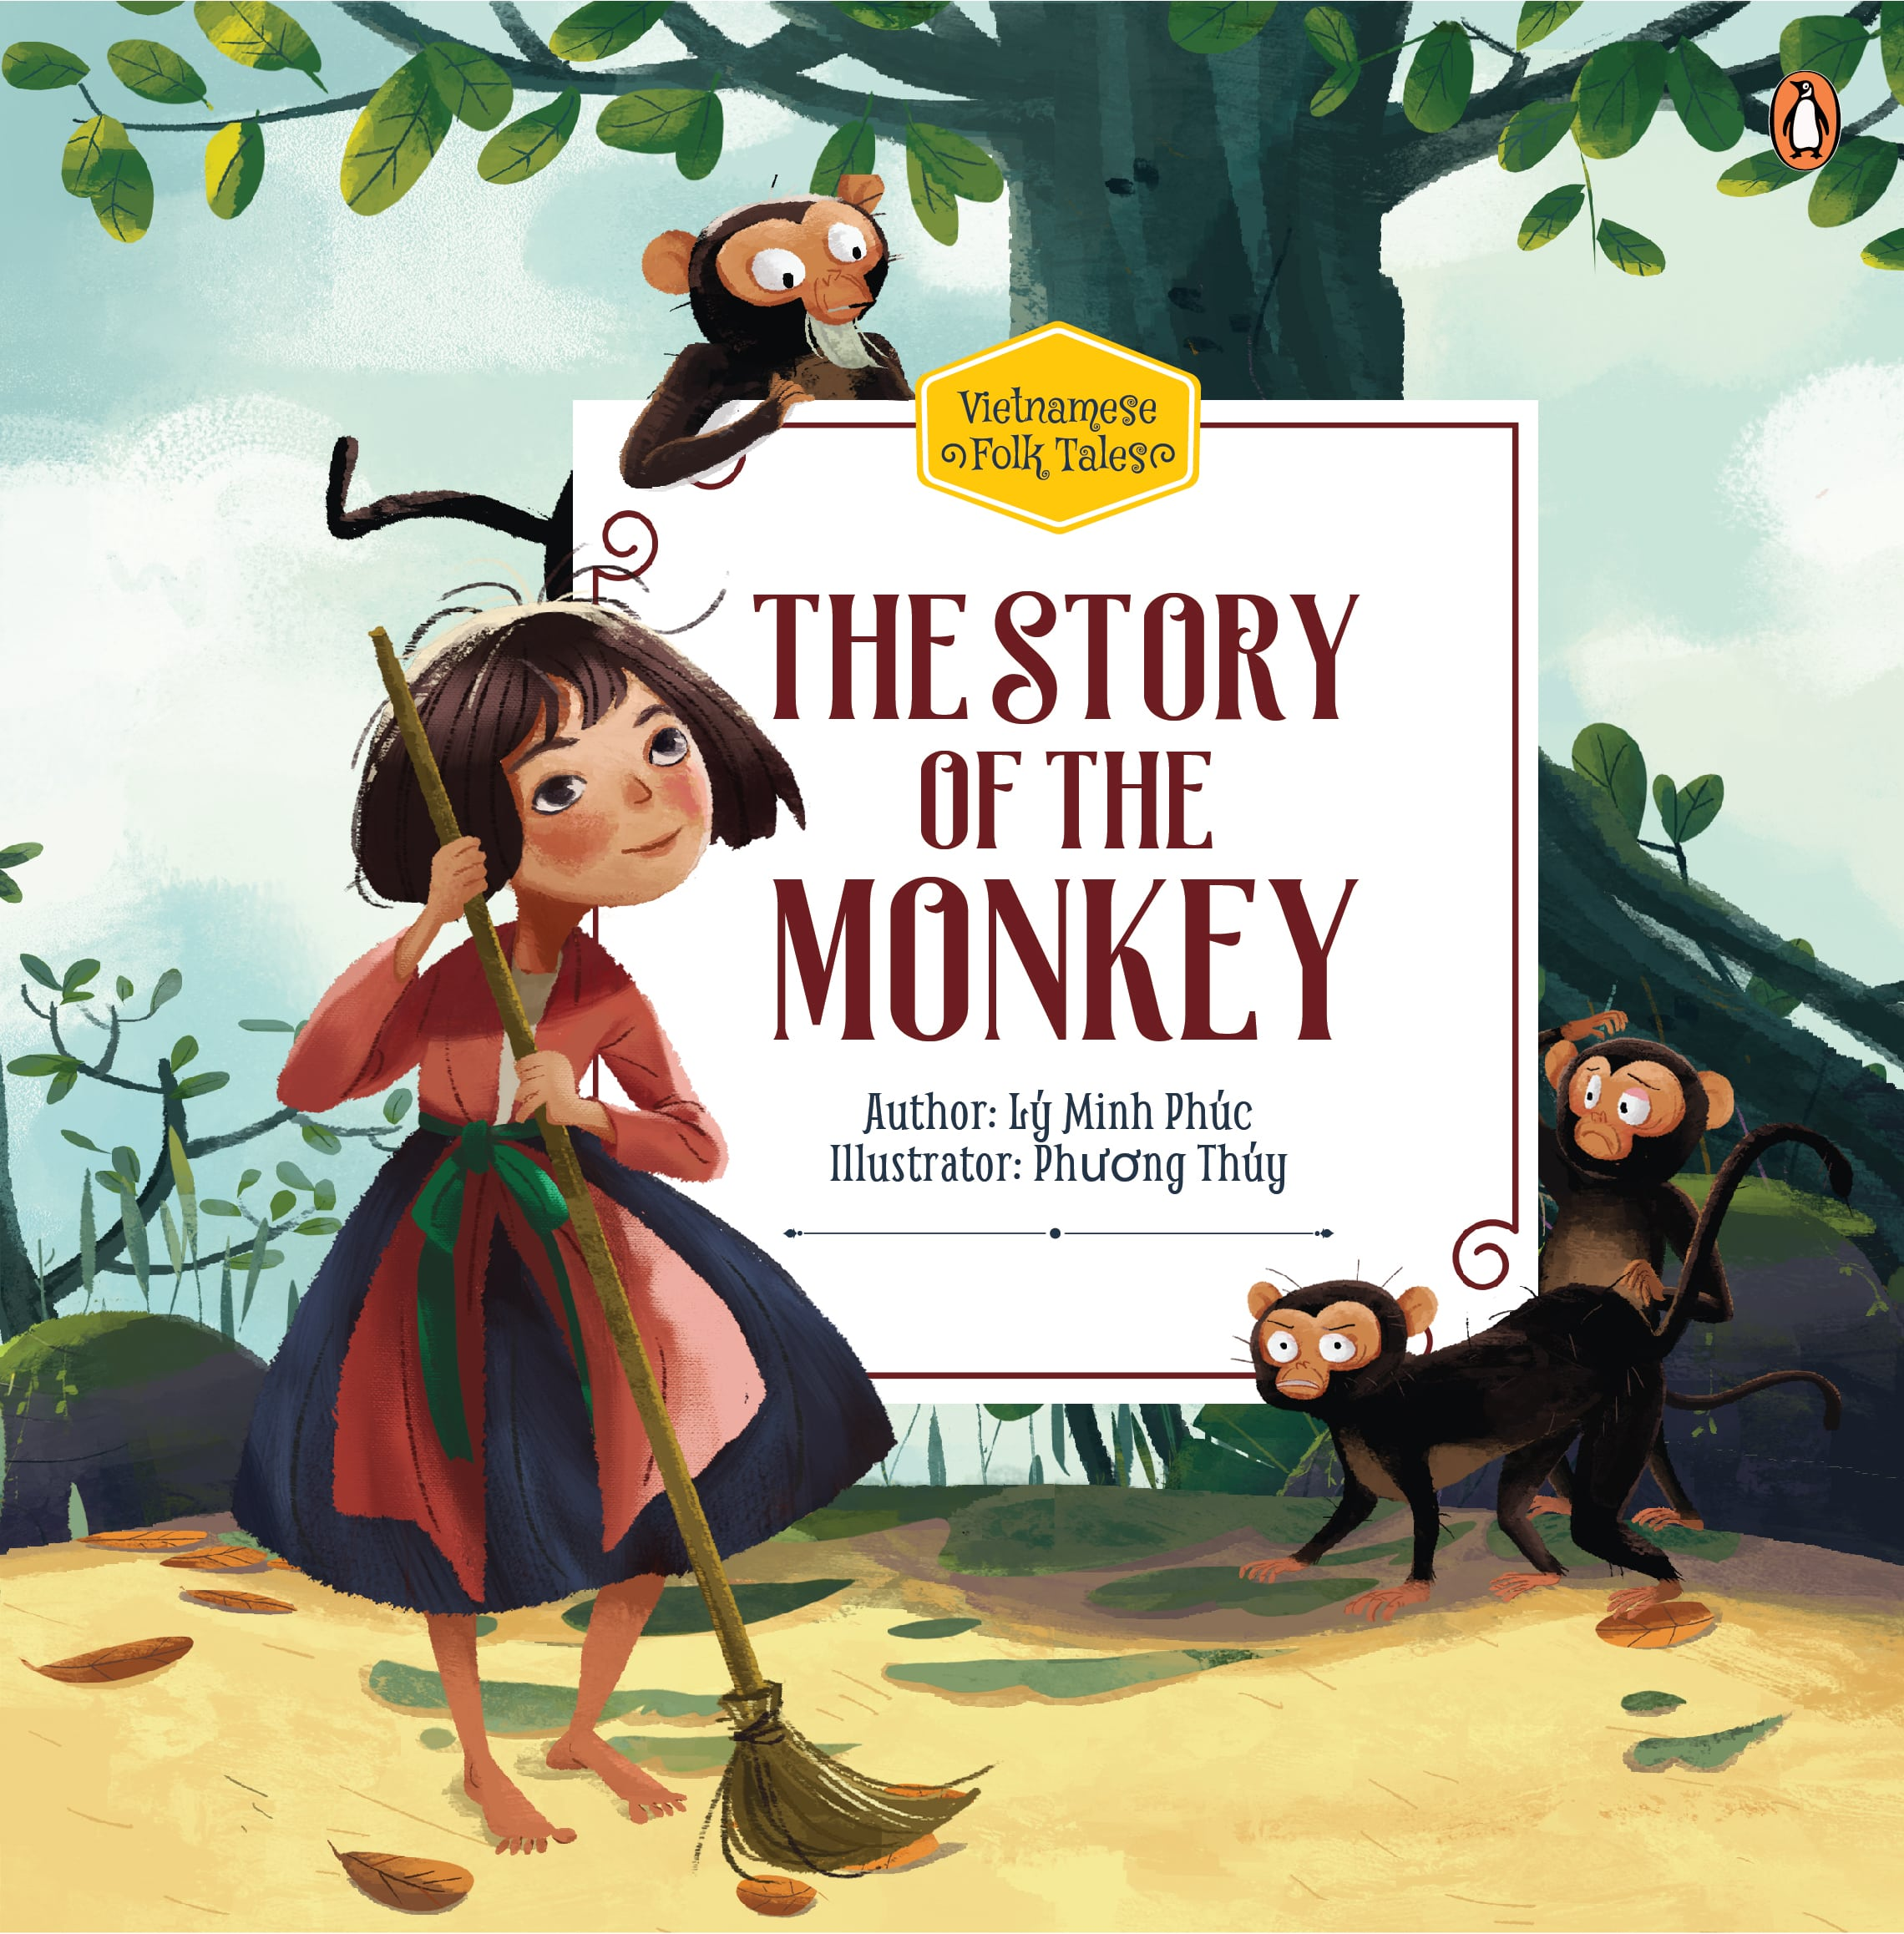 The Story of the Monkey